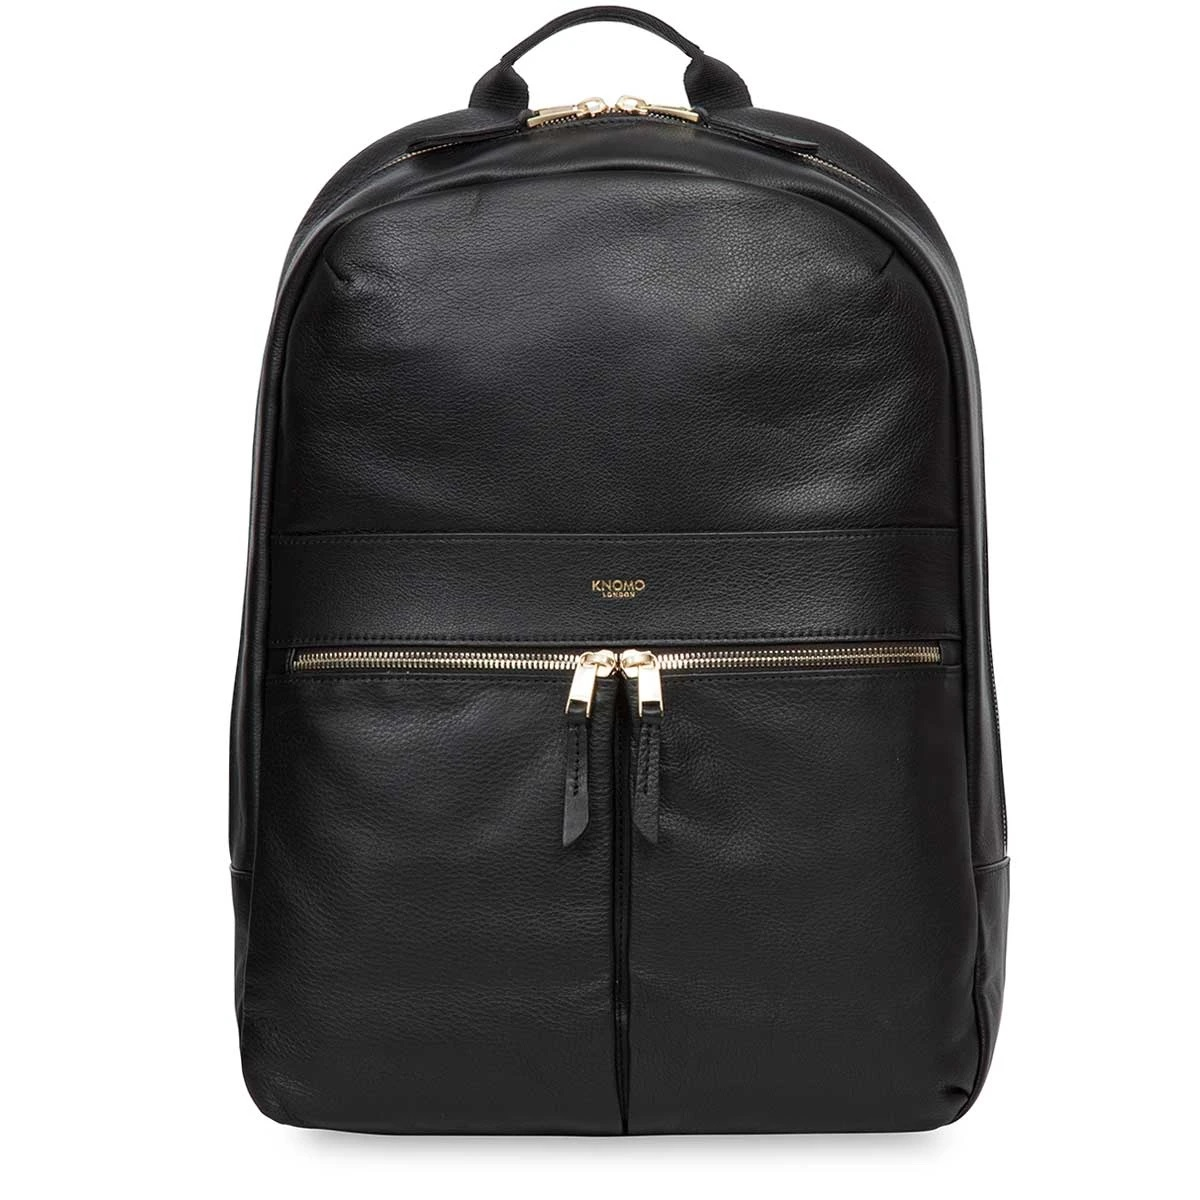 Knomo Beaux Backpack in Black